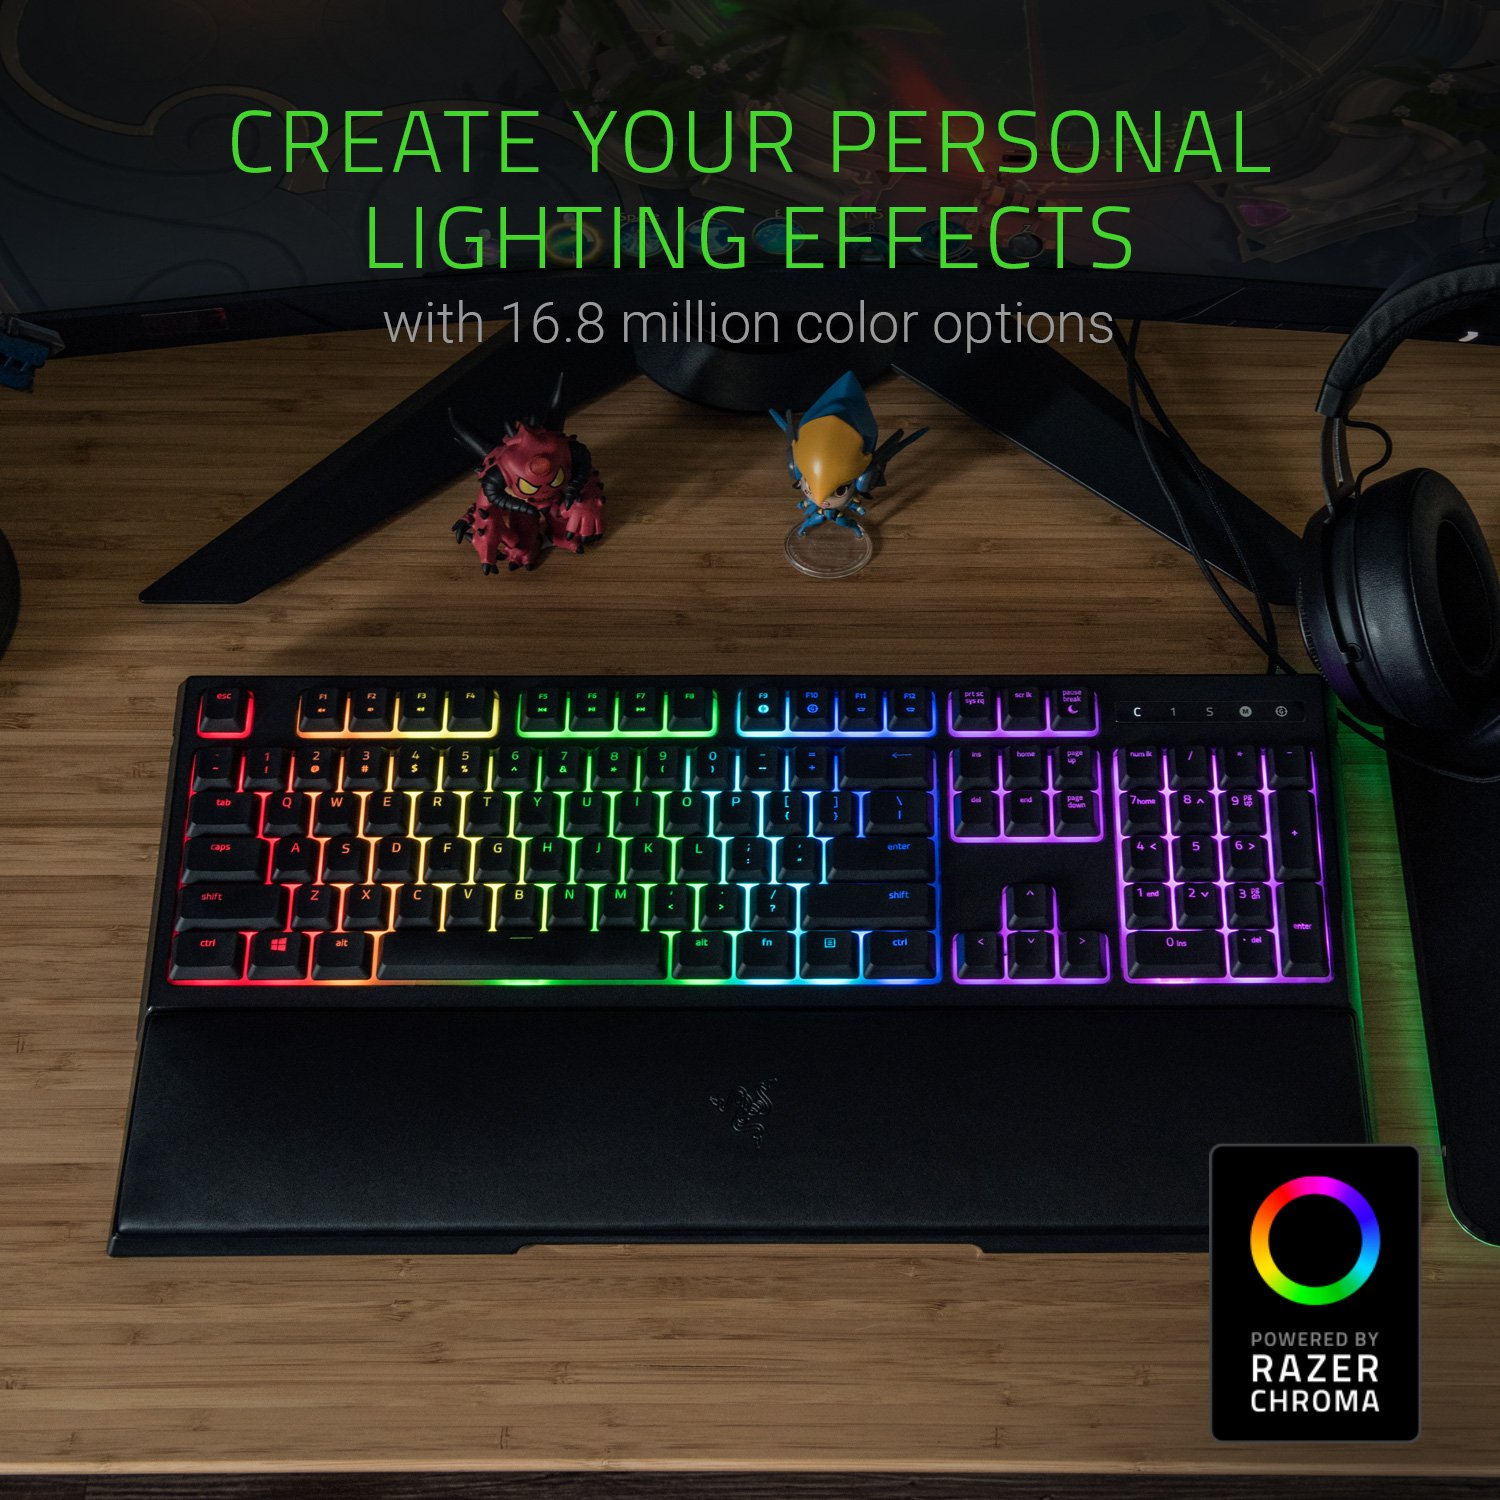 5d75aa4e648 Amazon.com: Razer Ornata Chroma Gaming Keyboard: Mecha-Membrane Key  Switches - Customizable Chroma RGB Lighting - Individuallly Backlit Keys -  Detachable ...